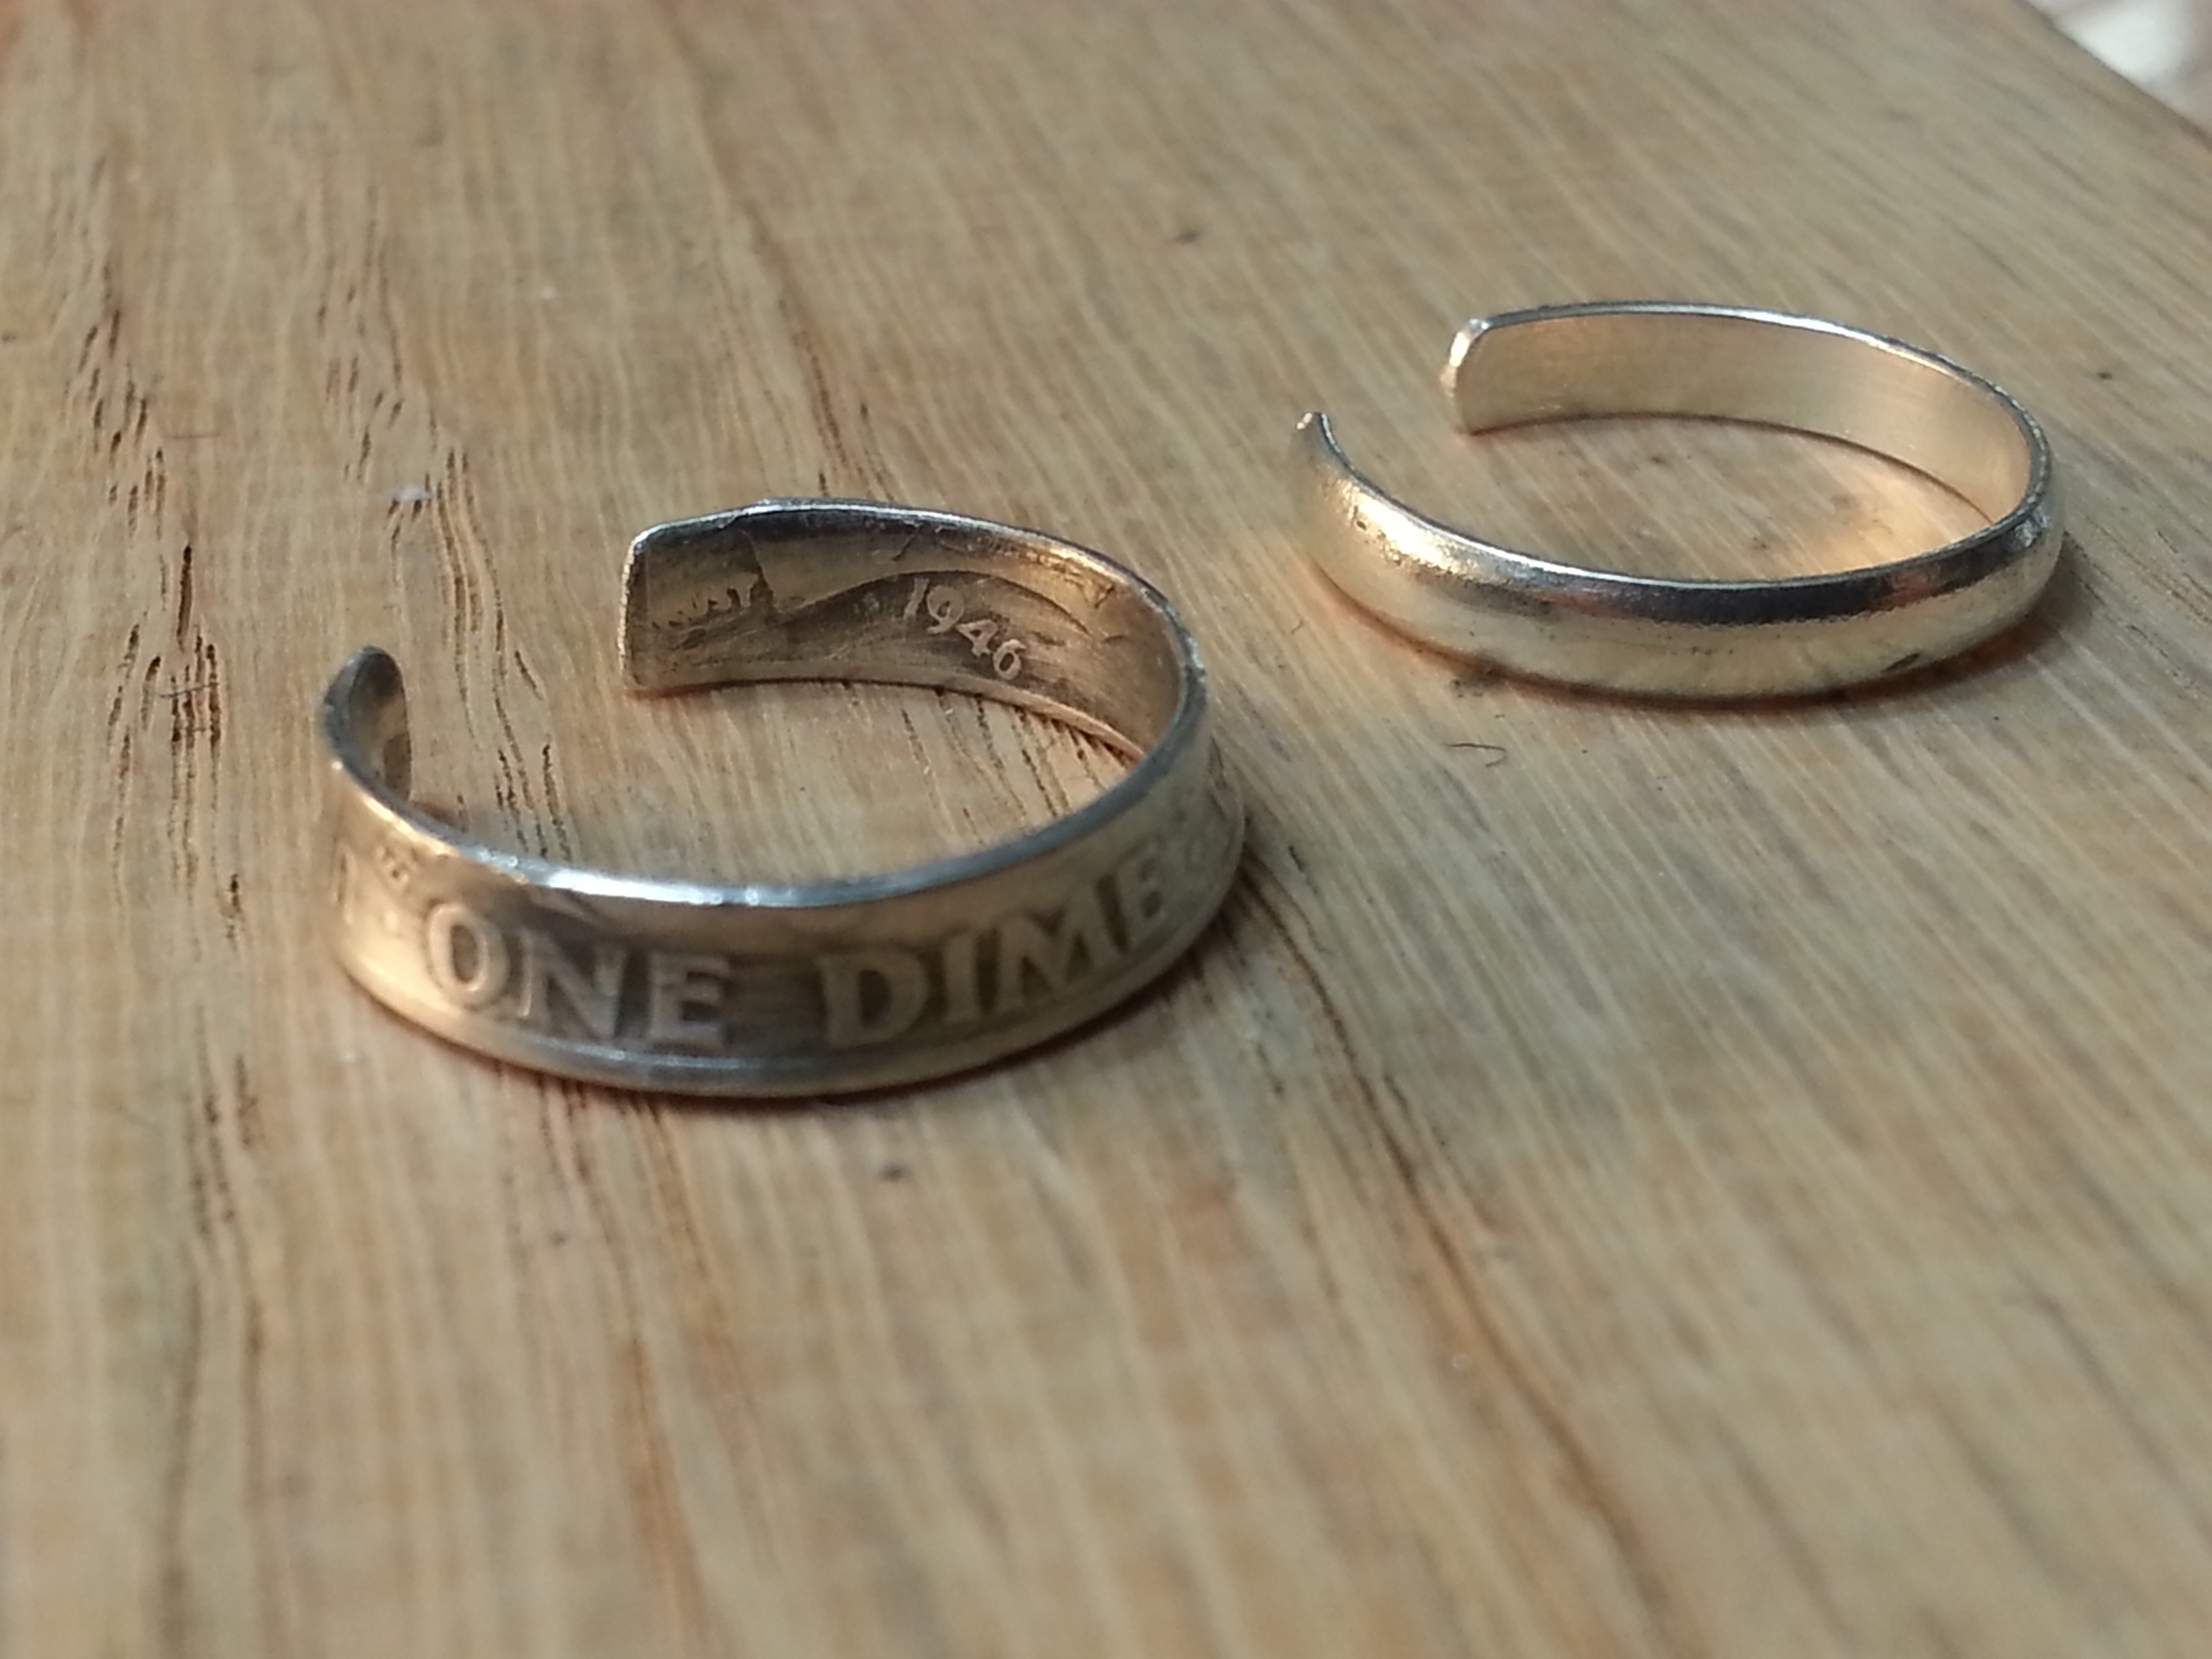 I Recently Picked Up A New Skill. Here Are Some Silver Coin Rings With Regard To Most Recent Mens Toe Rings (Gallery 10 of 10)